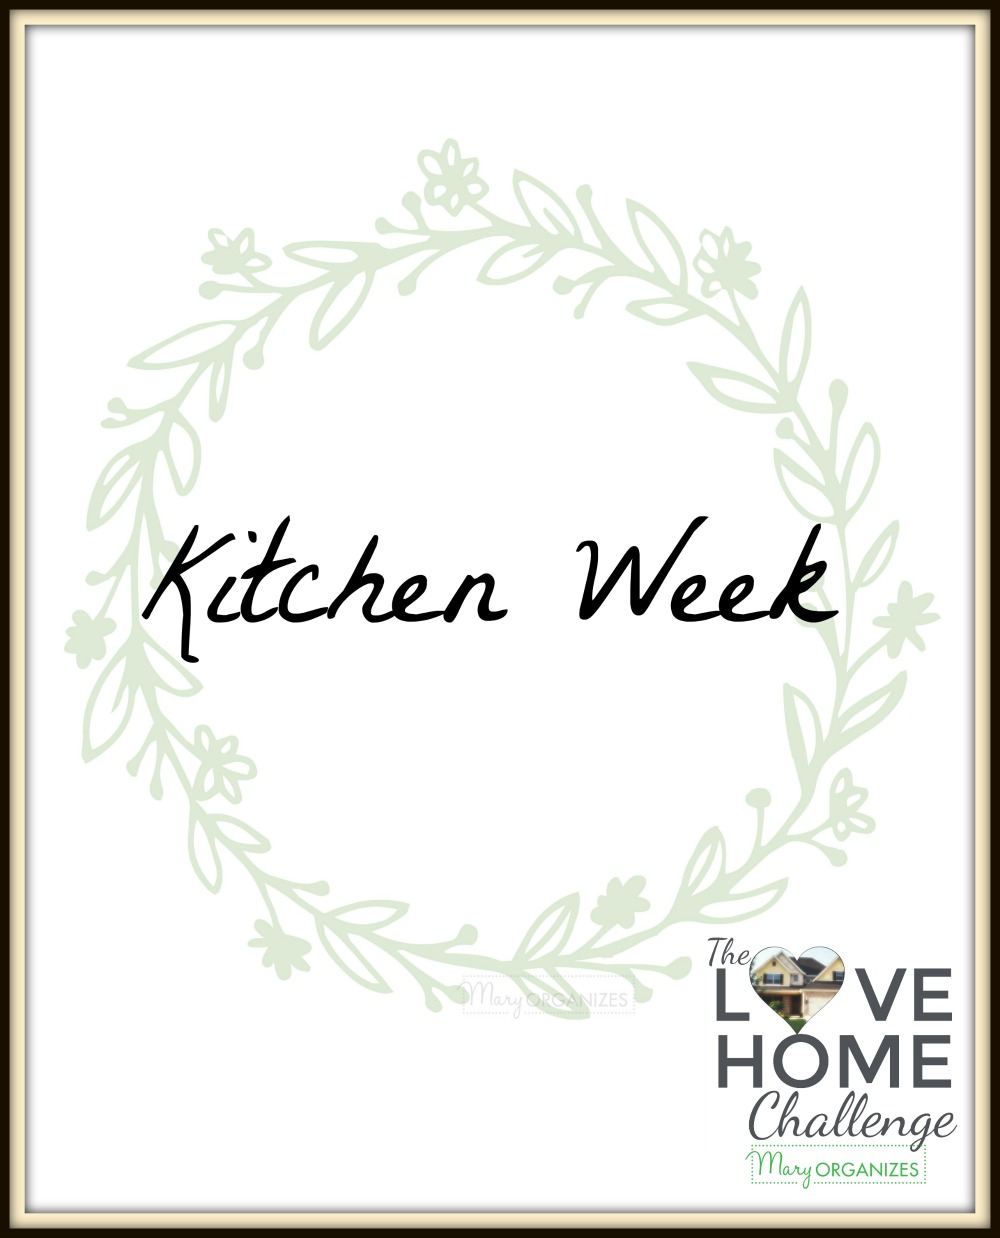 kitchen-week-of-the-love-home-challenge-v